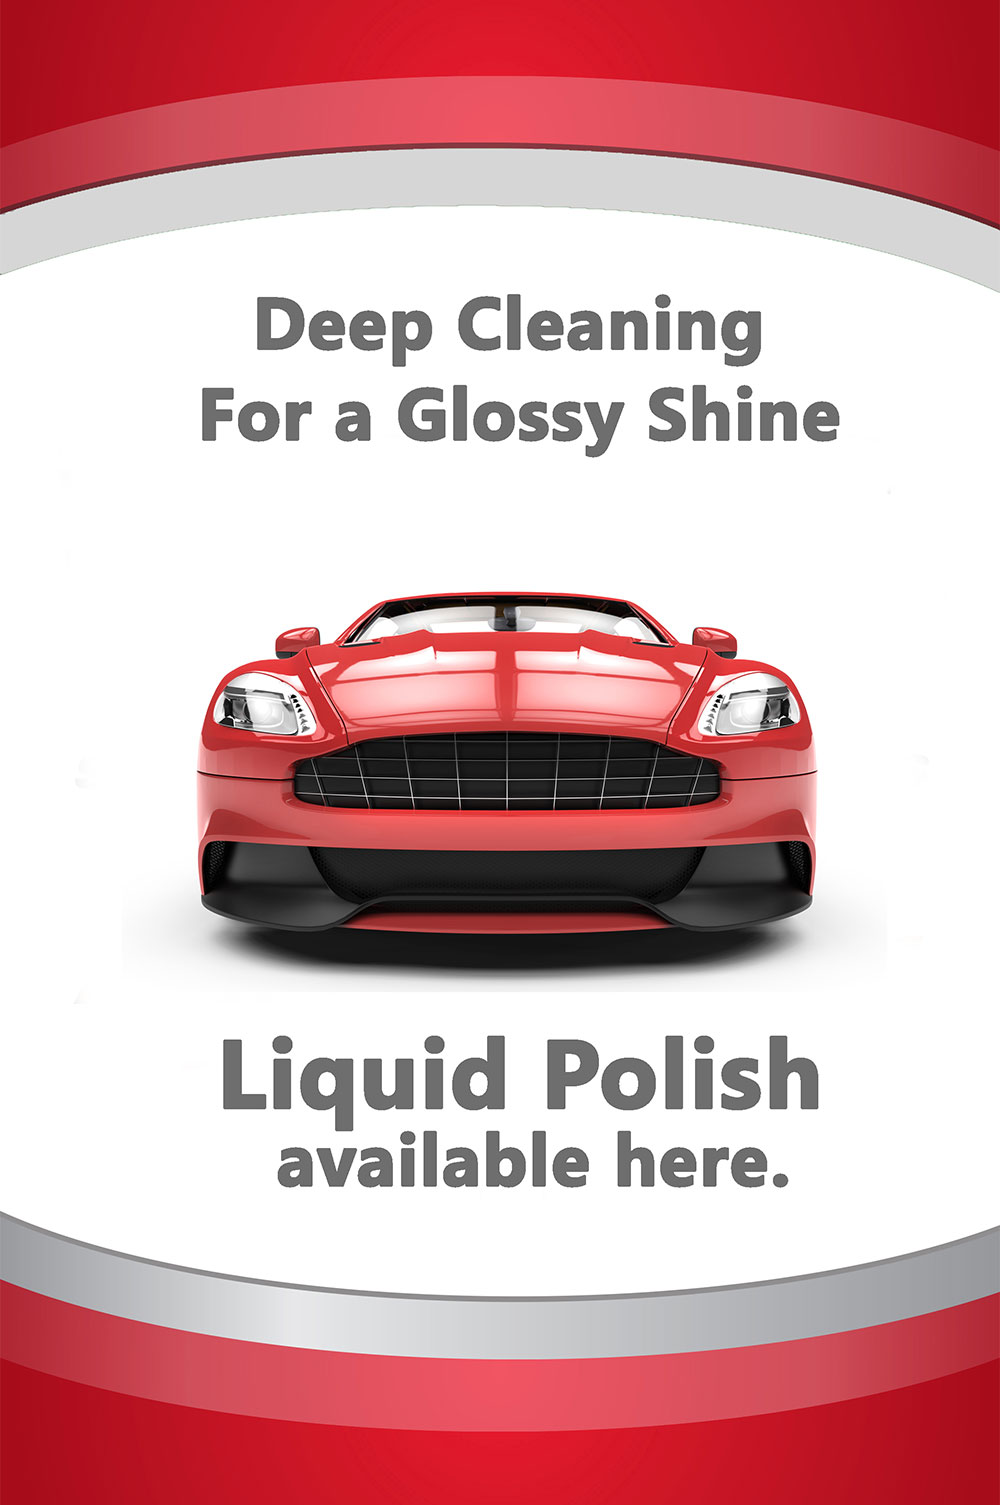 Liquid Polish sign